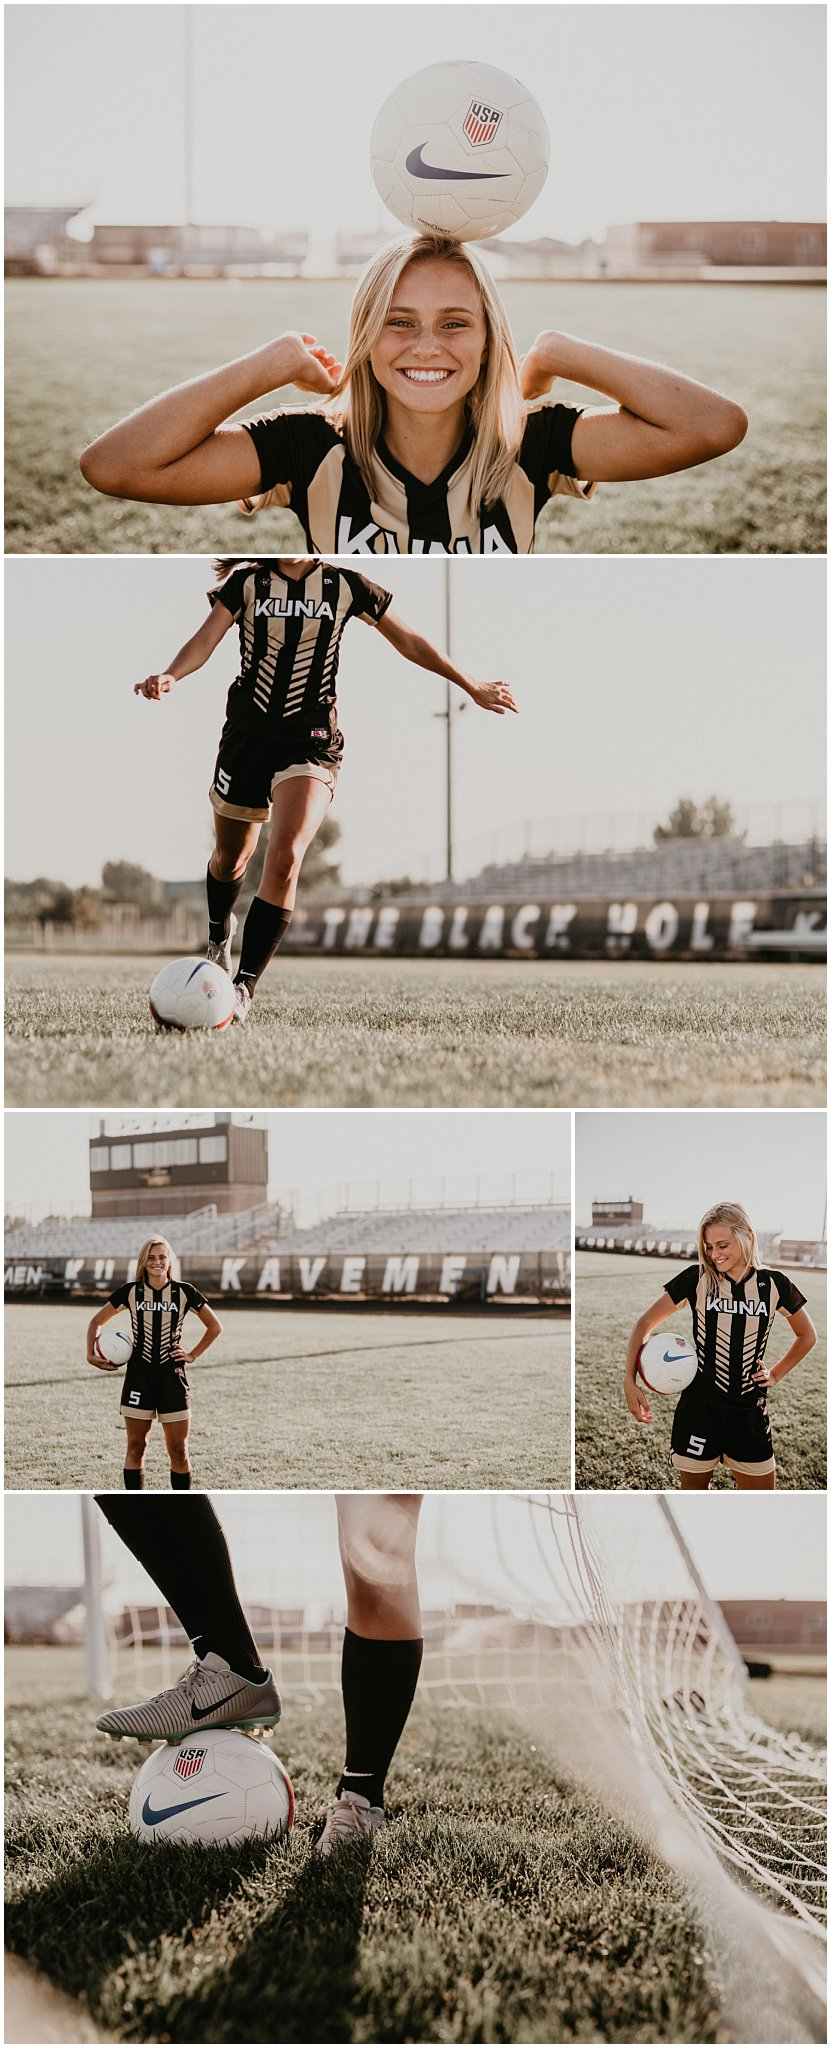 Boise senior photographer kuna high school soccer class of 2018 brooke ray senior pictures summer sports fun laughter Kuna Brooke Ray